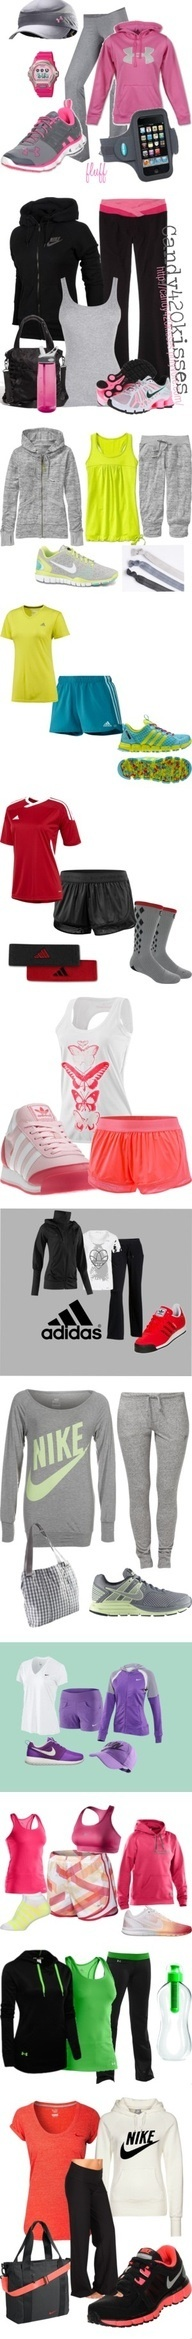 Athletic wear under $30! LOVE the blk n grn under armour!